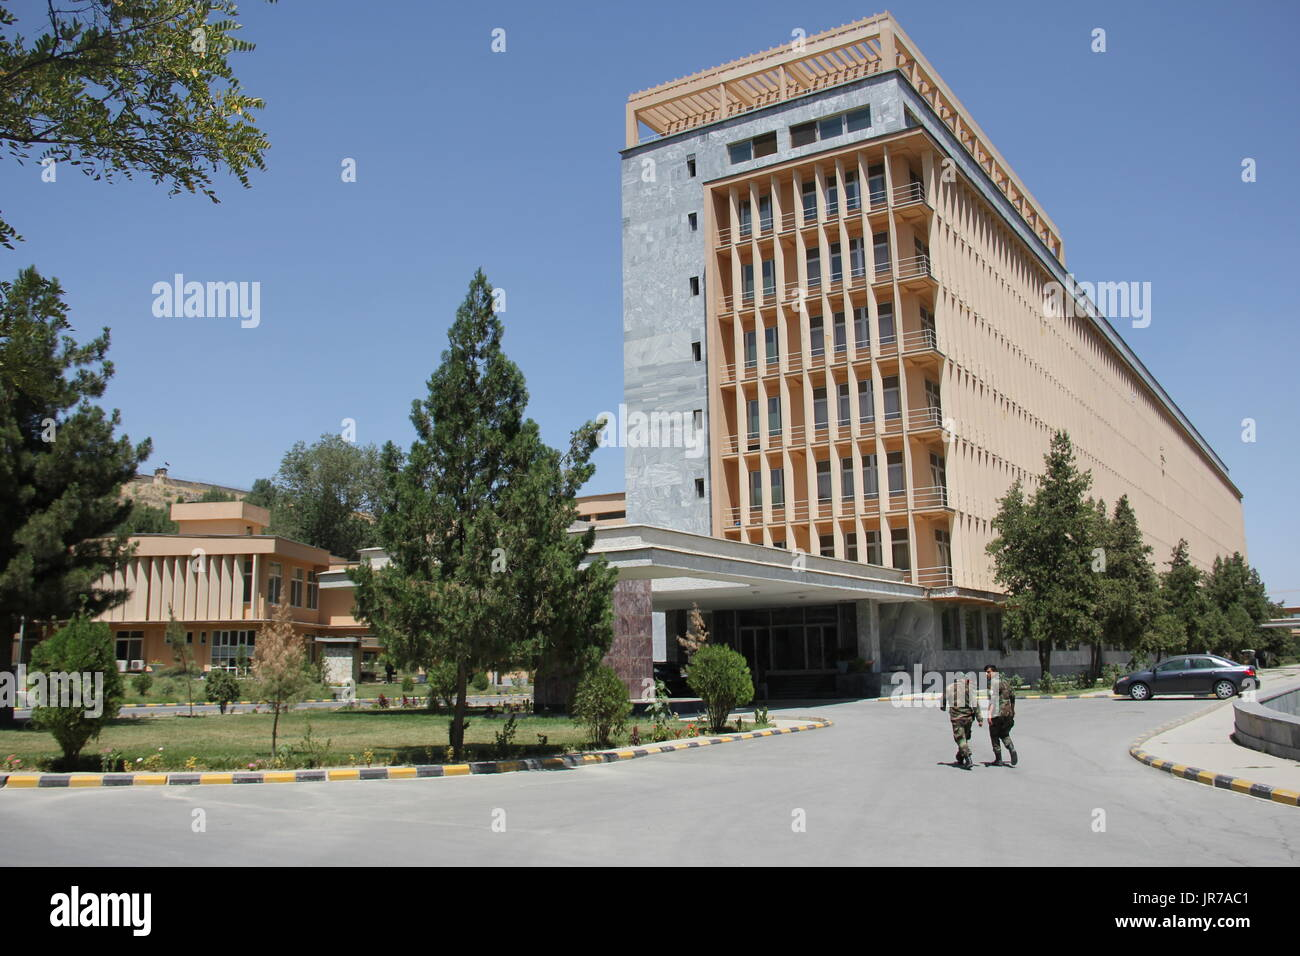 Picture of the largest military hospital in the country, taken in Kabul, the capital of Afghanistan, 24 July 2017. The Afghan Army counts with six such clinics across the country, which are incapable of coping with the onslaught of injured soldiers. The war with the Taliban continues to spread. 12,000 troops and police offiucers were injured last year and about 7000 were killed. The severest cases come here, to Kabul. Photo: Christine-Felice Röhrs/dpa - Stock Image